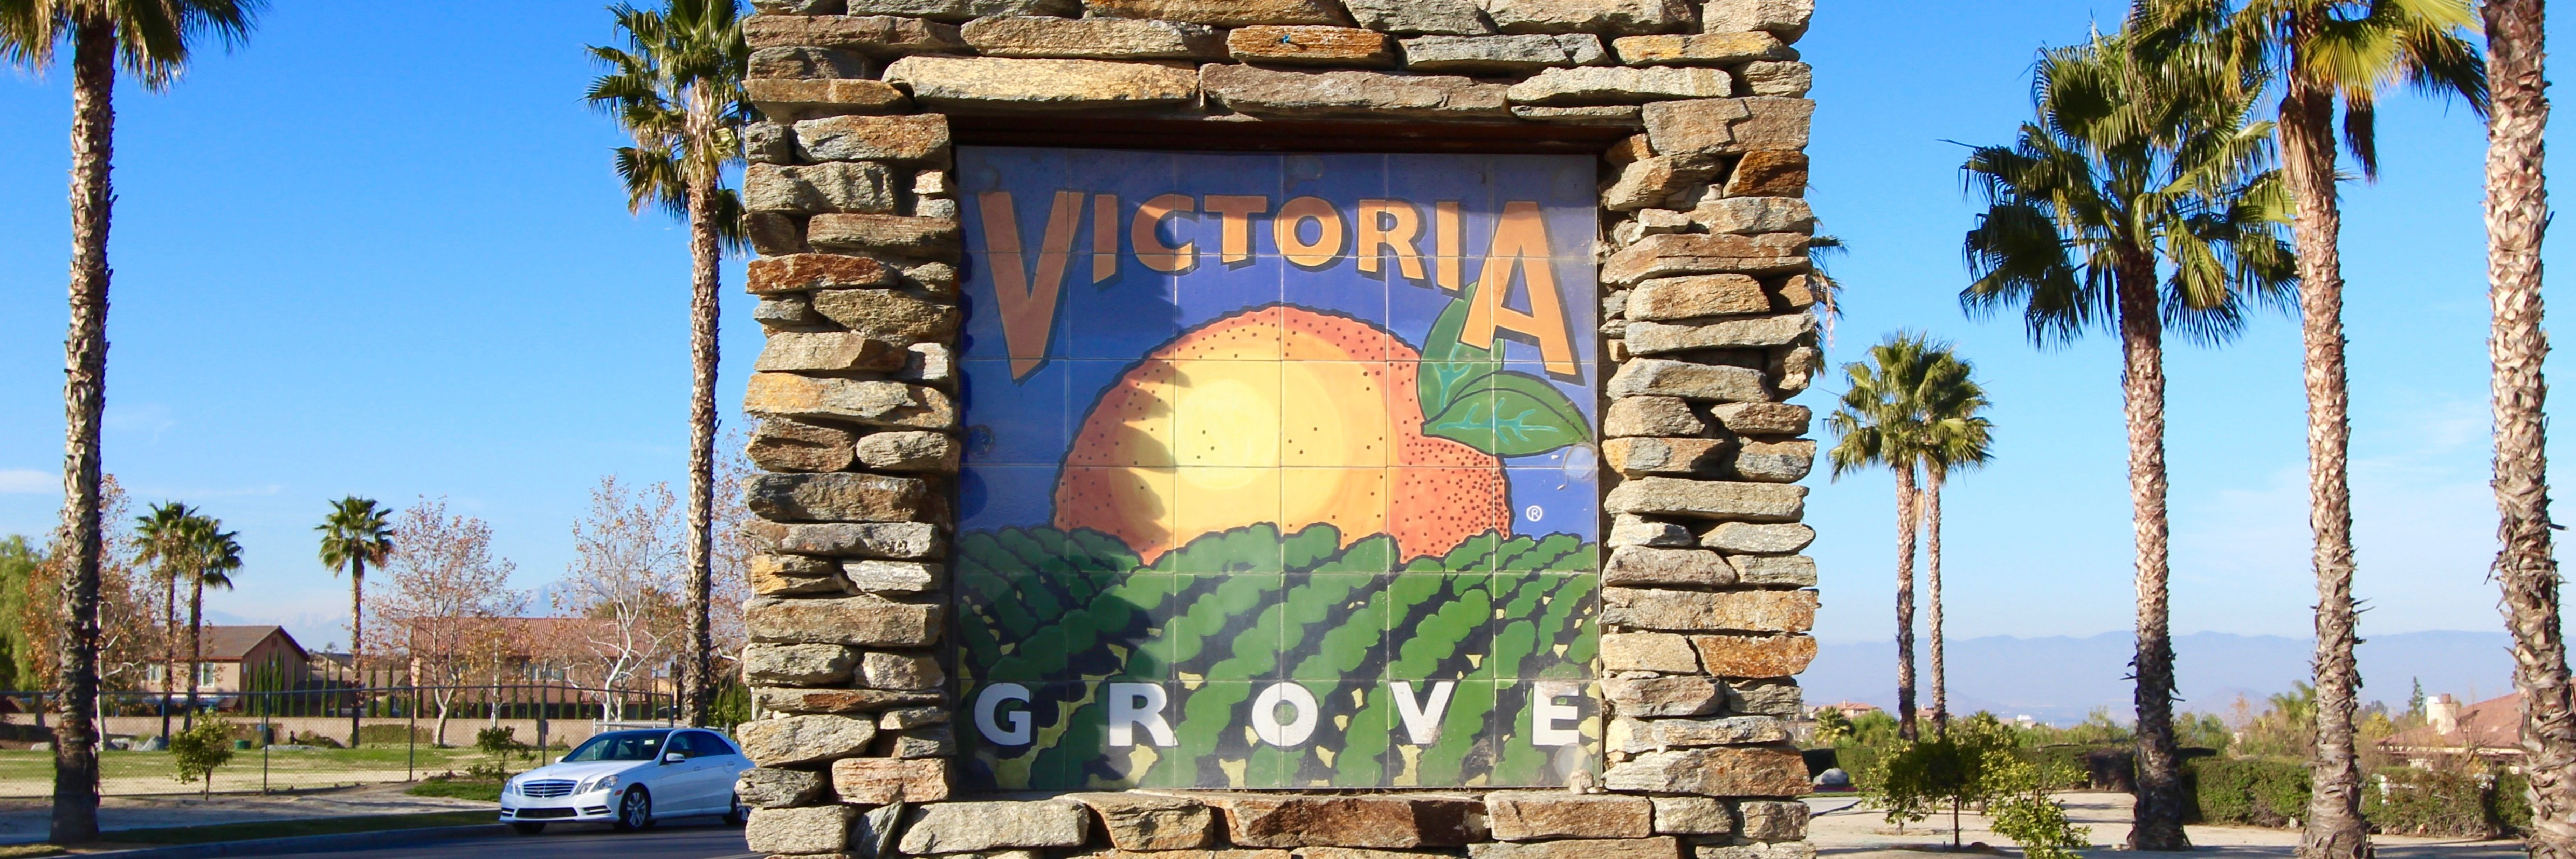 Victoria Grove is a community located in Riverside Ca